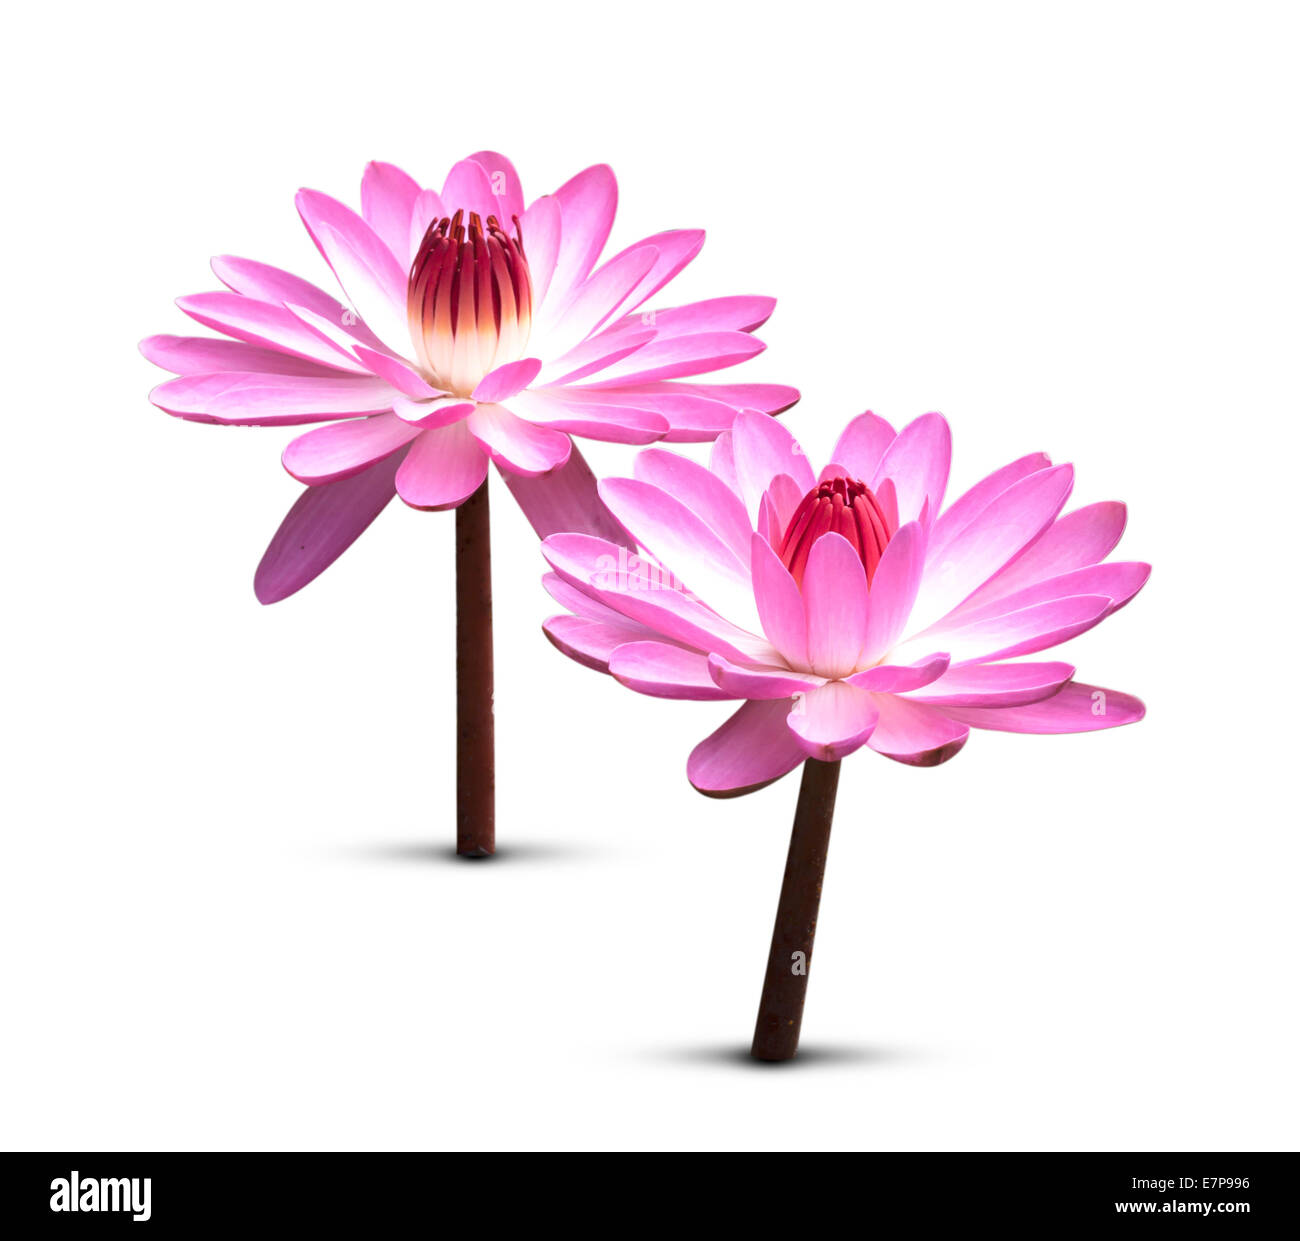 Blooming Lotus Flower Isolated On White Background Stock Photo